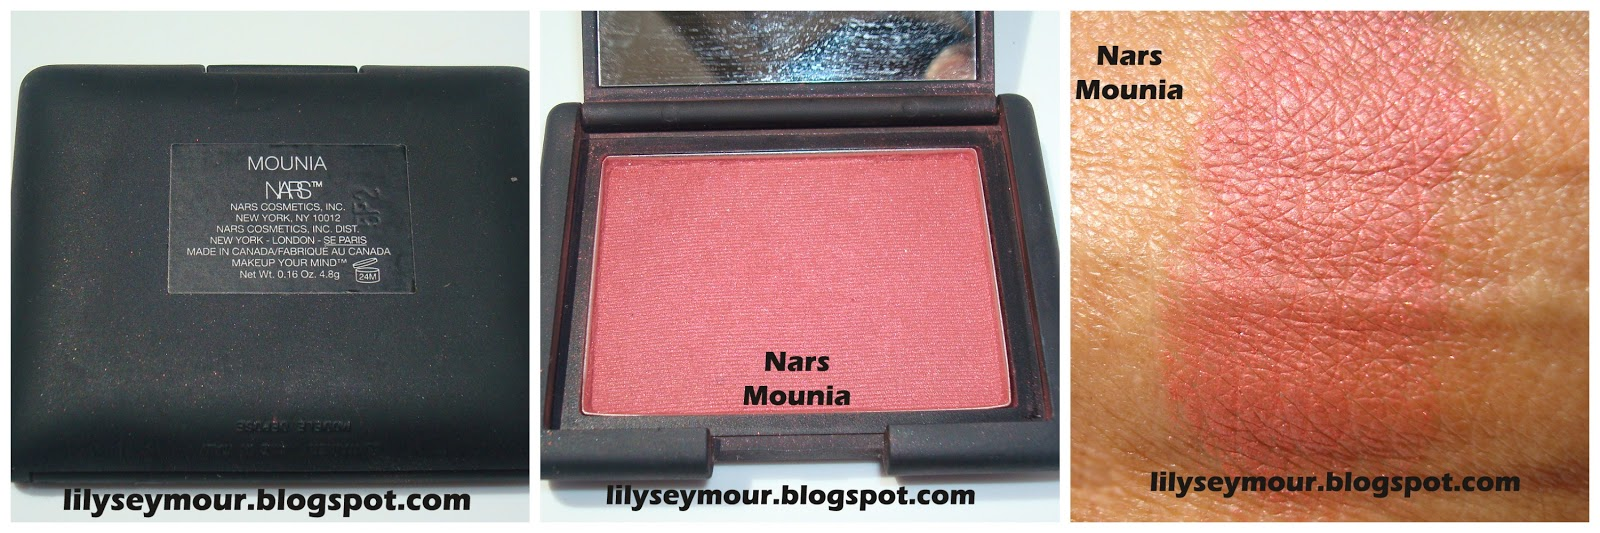 Nars Mounia Blush